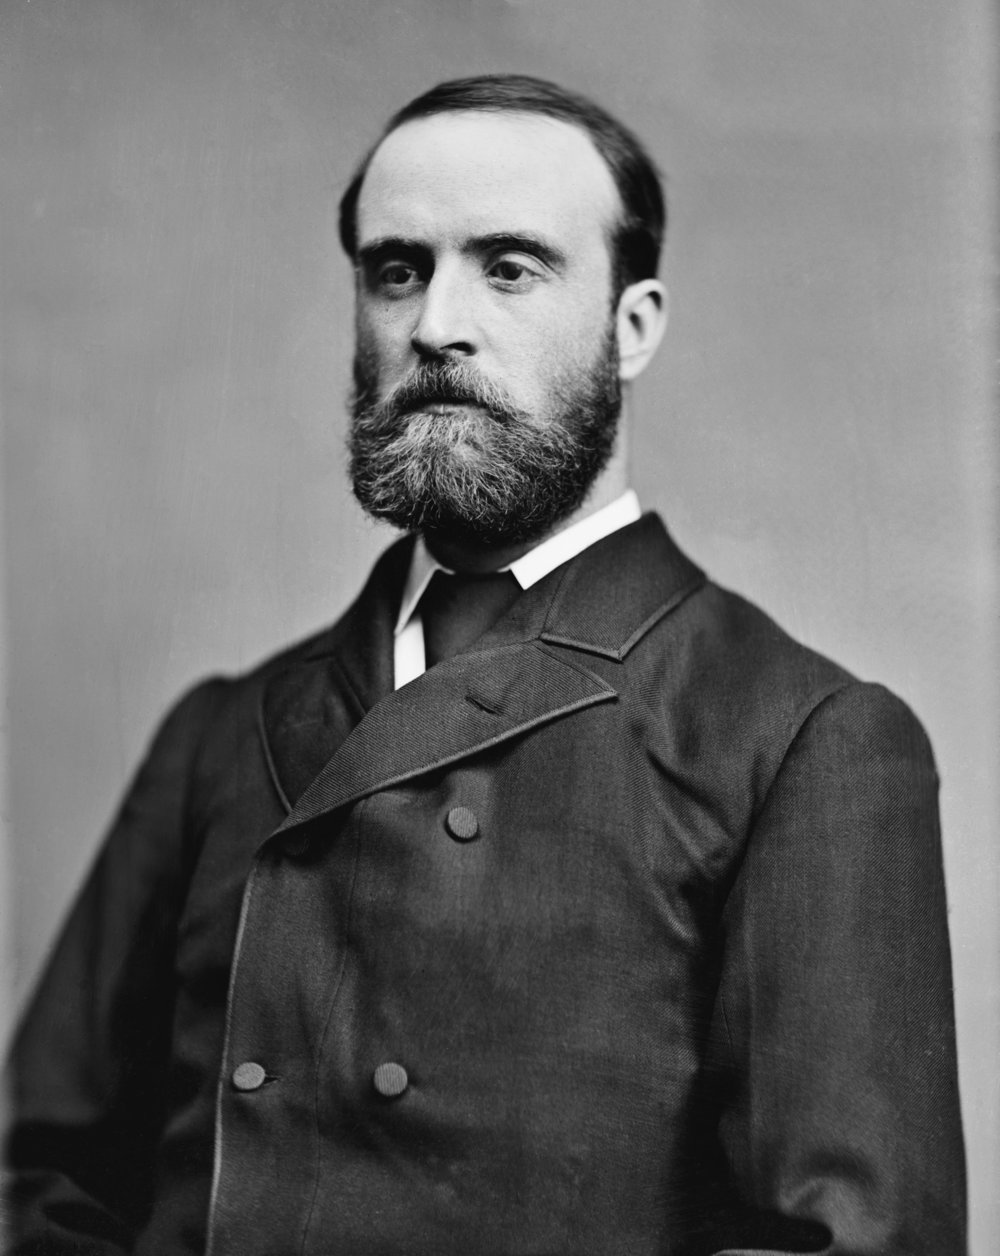 Charles Stewart Parnell (Mathew Brady/Library of Congress)